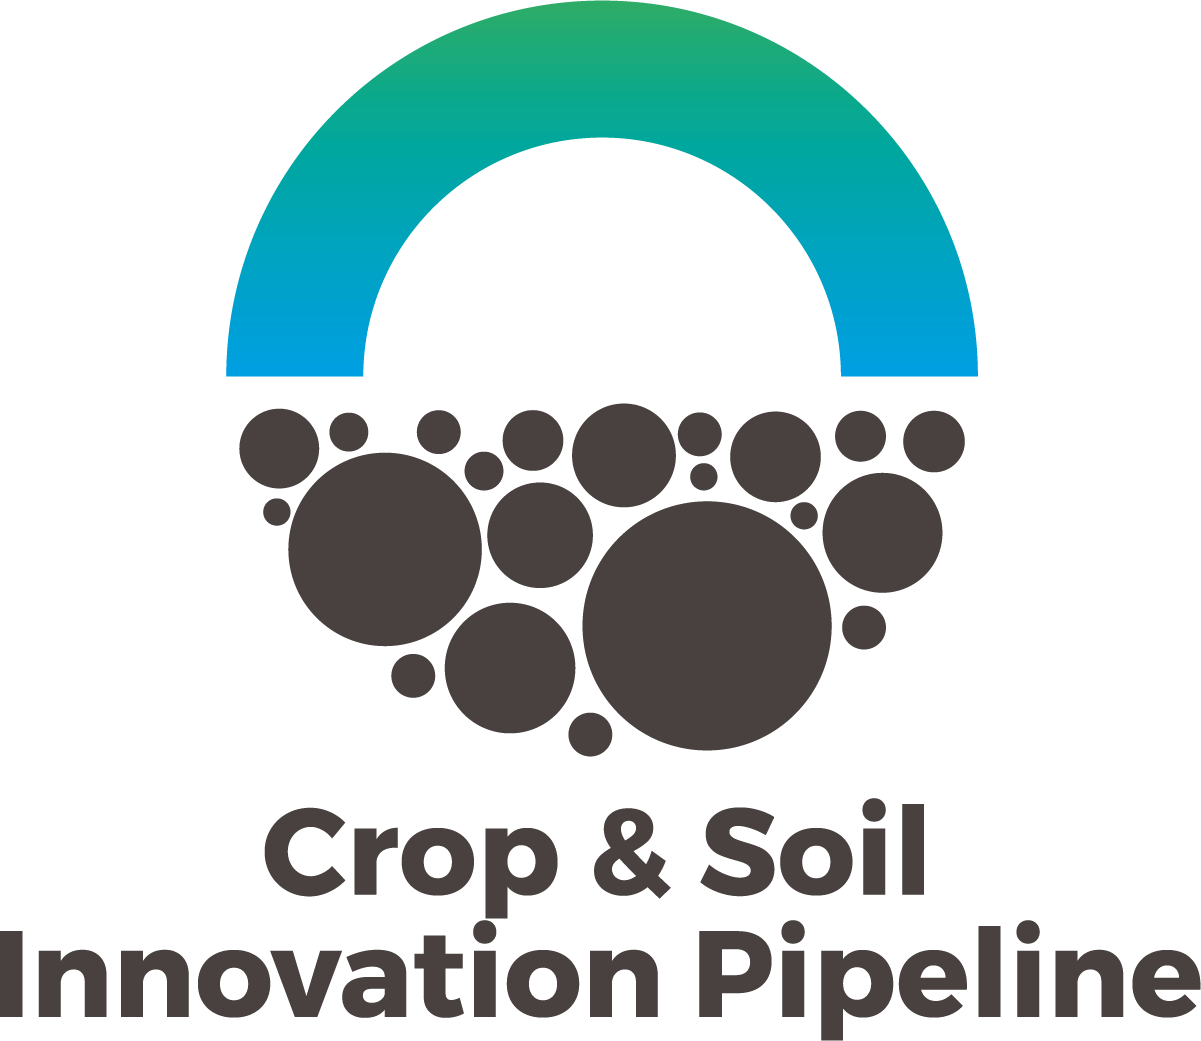 Crop & Soil Innovation Pipeline